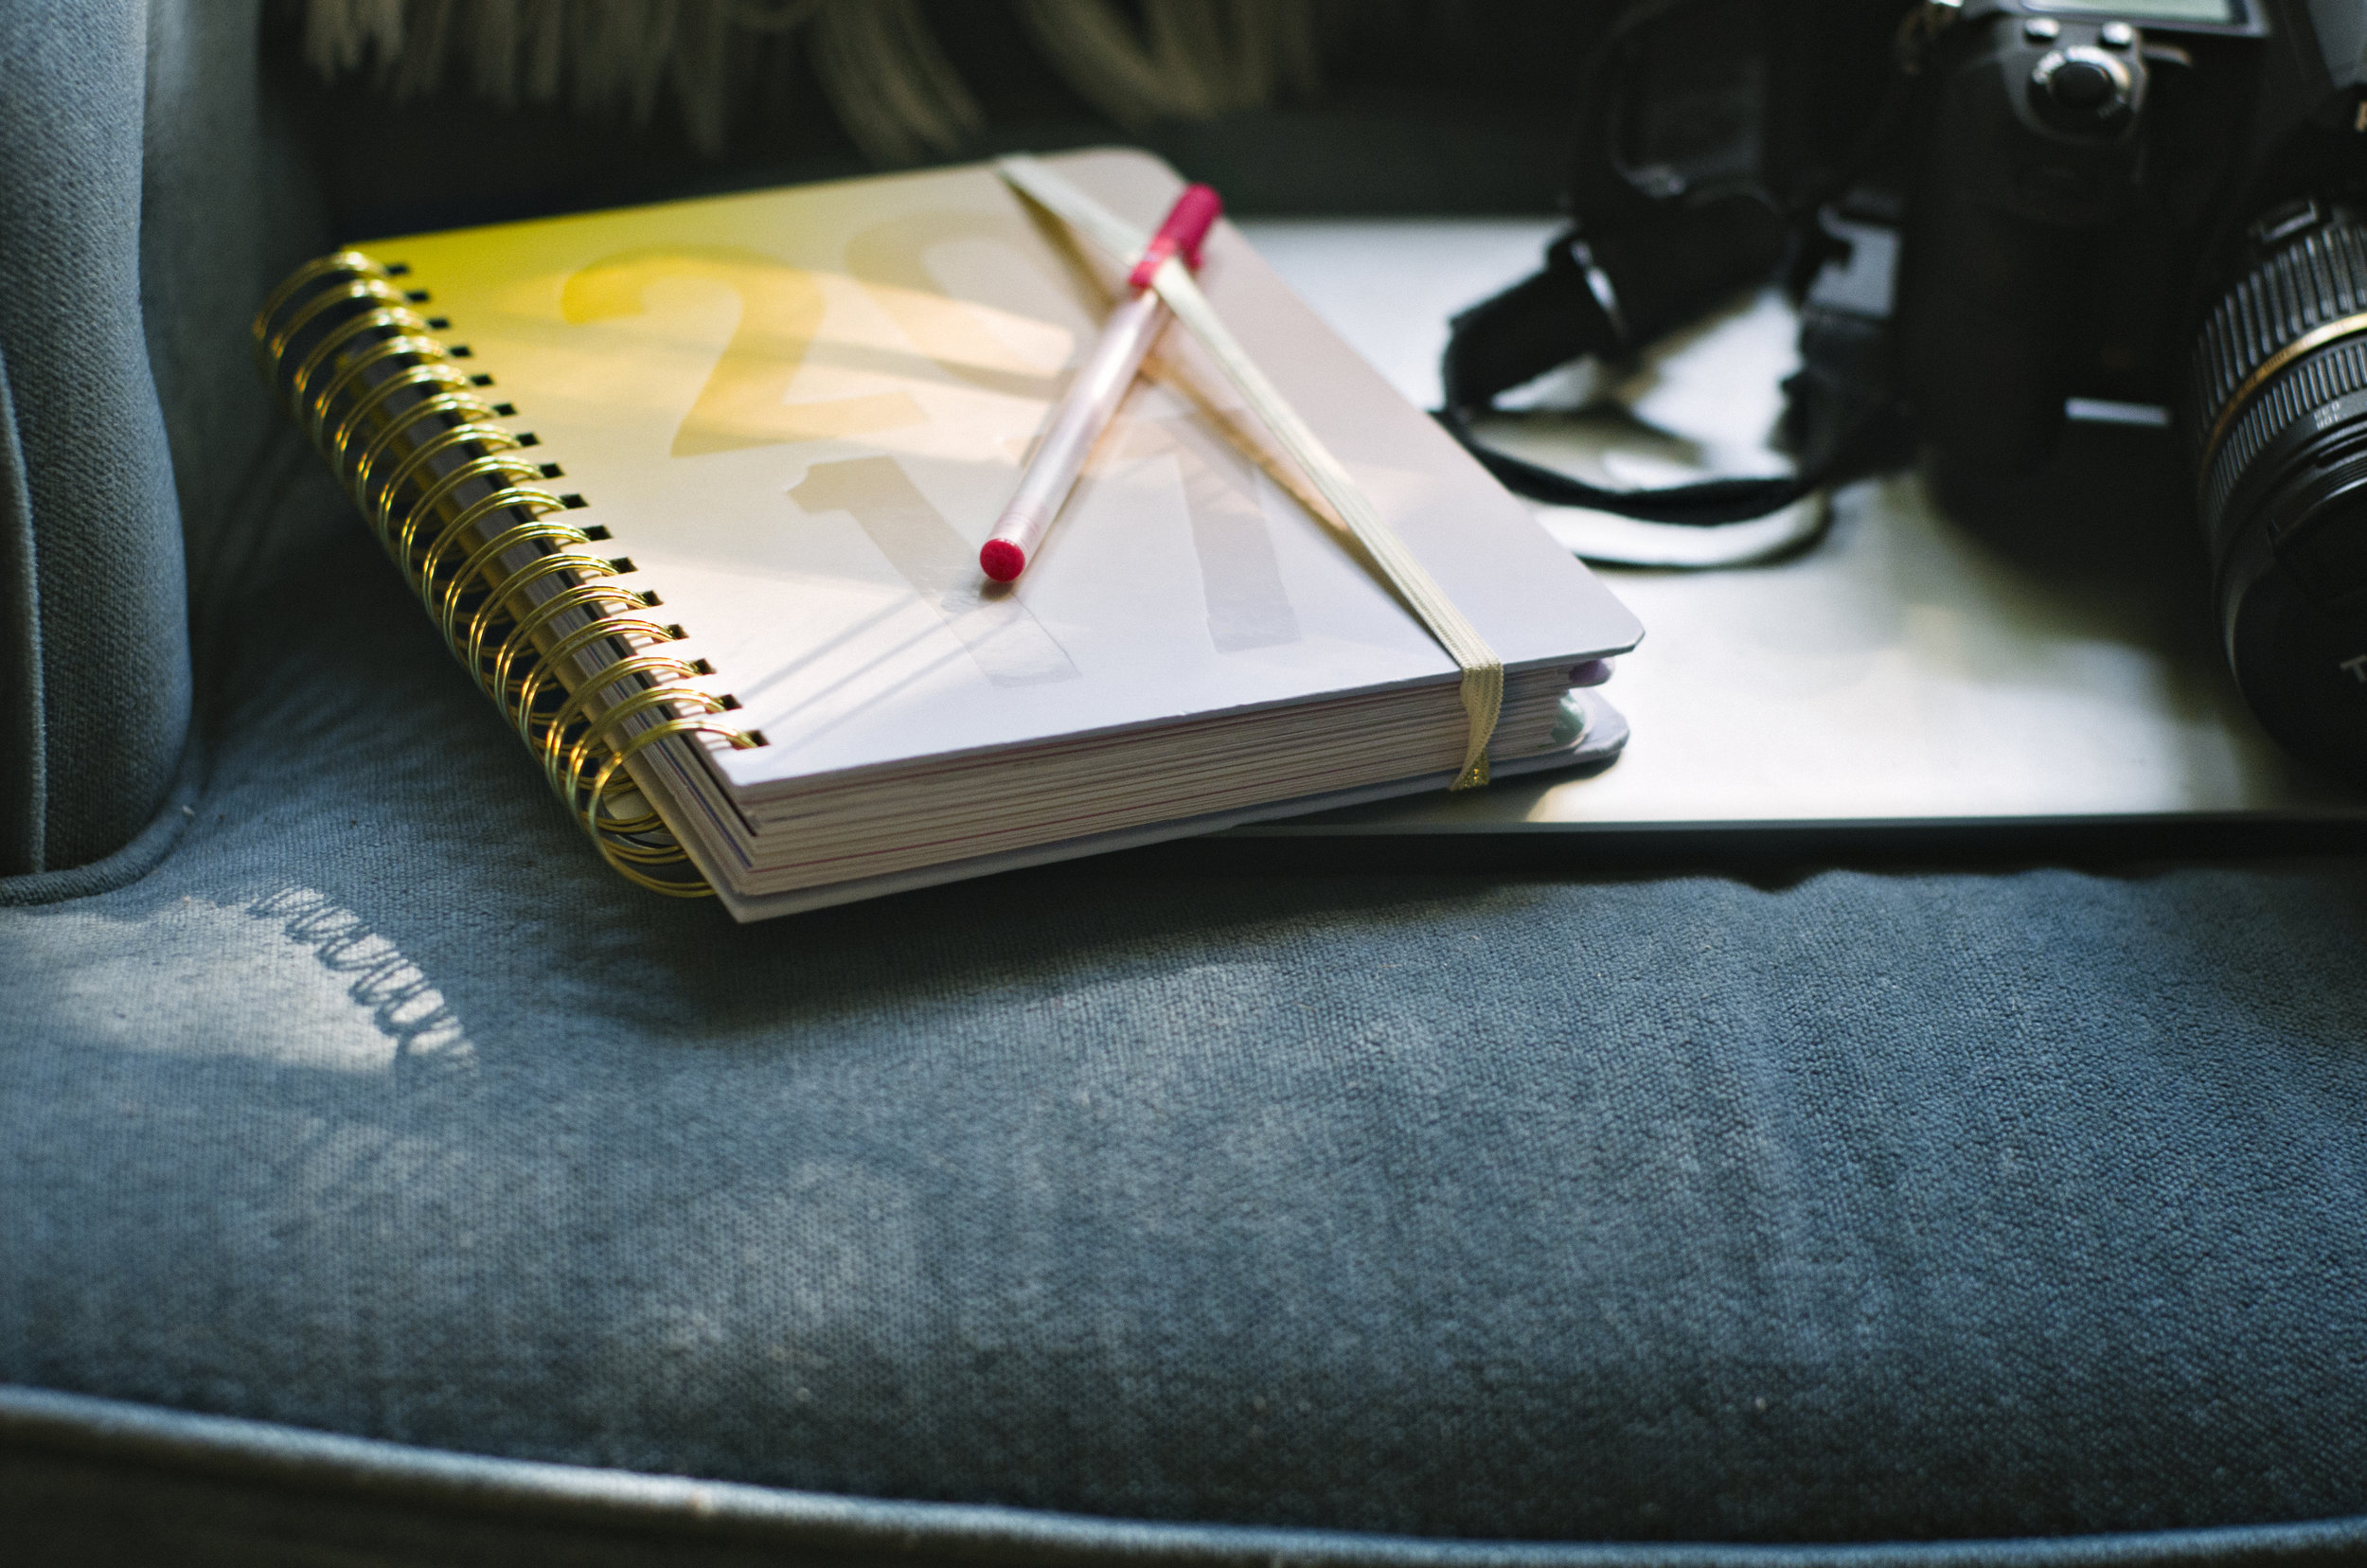 Jackie_Daily_Photography_Workspace_002.jpg